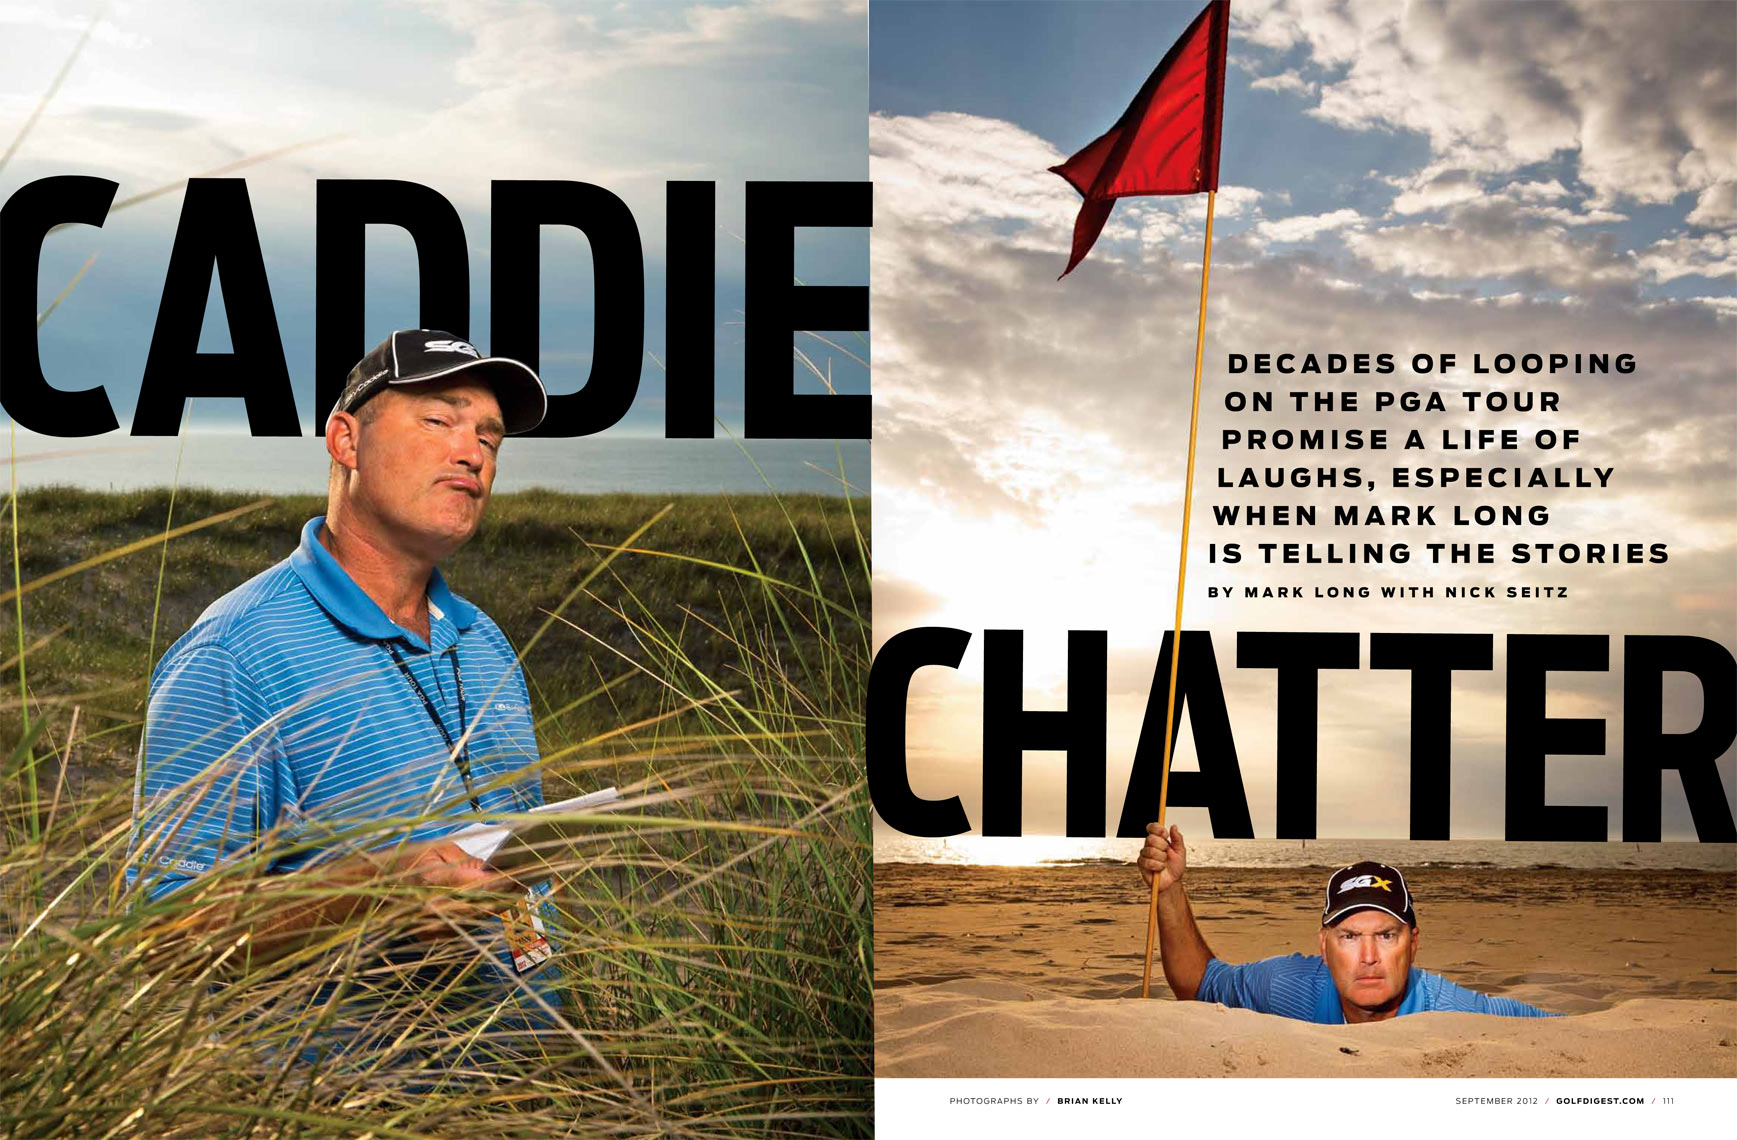 Golf Digest, PGA, PGA Tour, Caddie, Mark Long, Fred Funk, Brian Kelly Photography, Editorial, Portrait, Sports, Golf, Brian Kelly